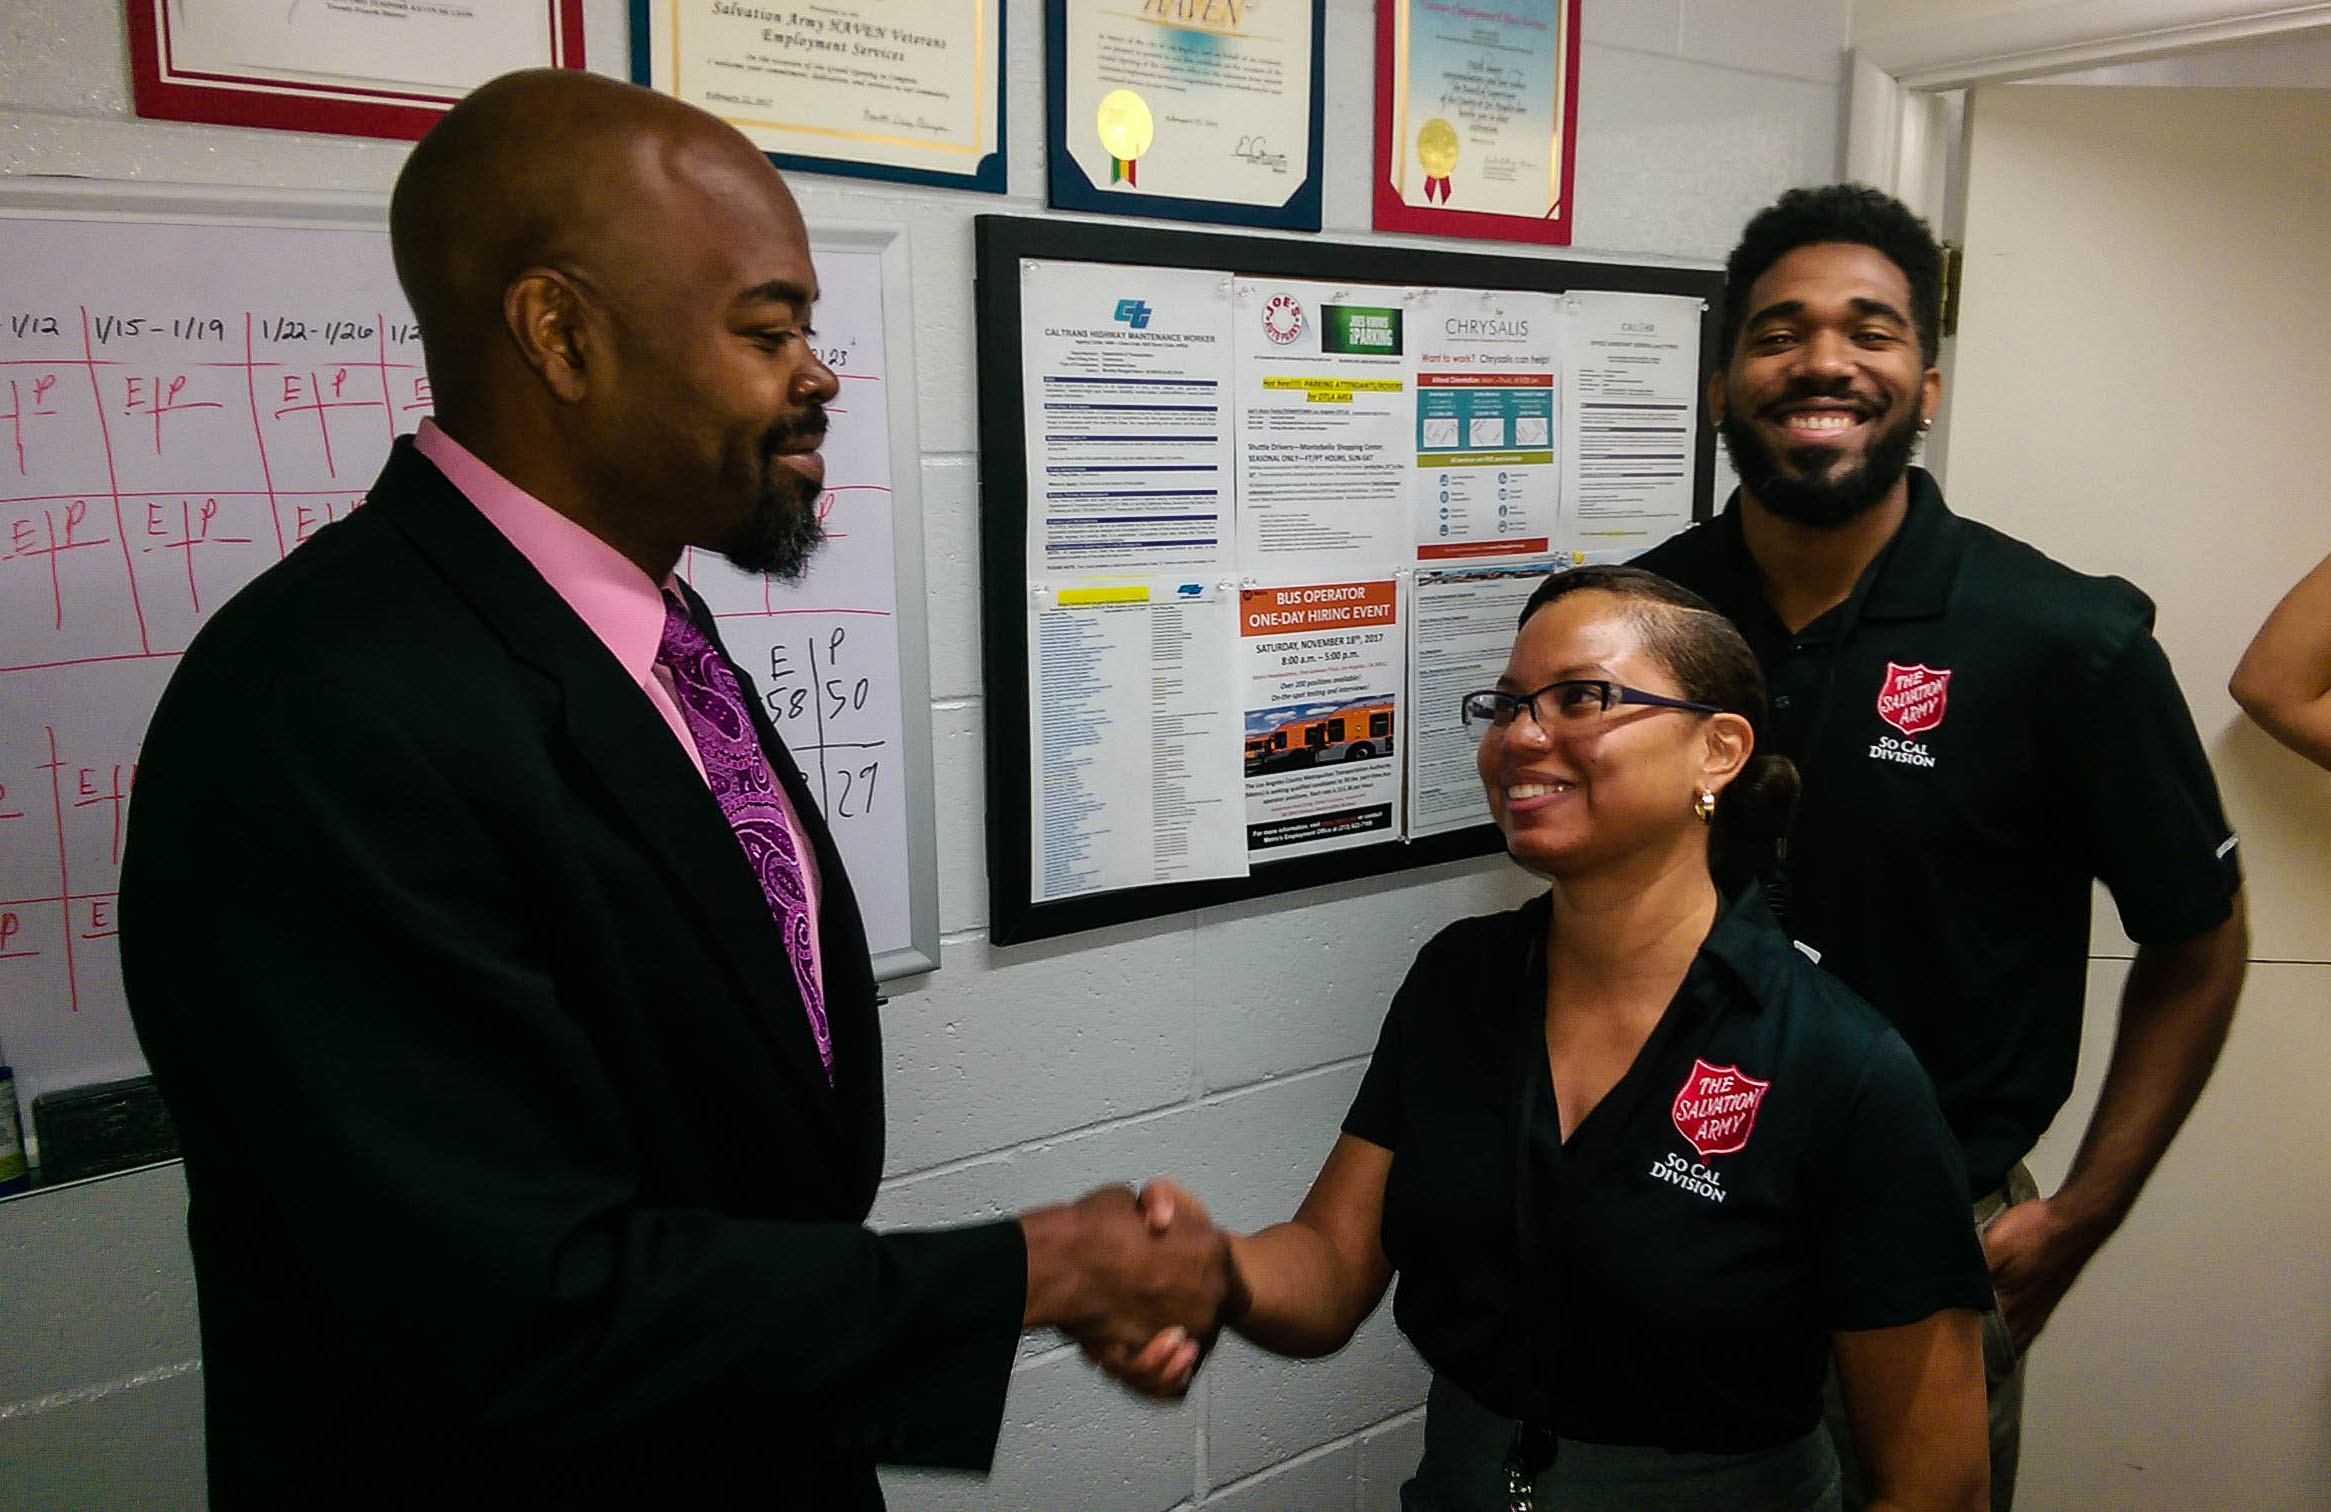 Salvation Army Program Helps Veterans Find Jobs, Get a New Start